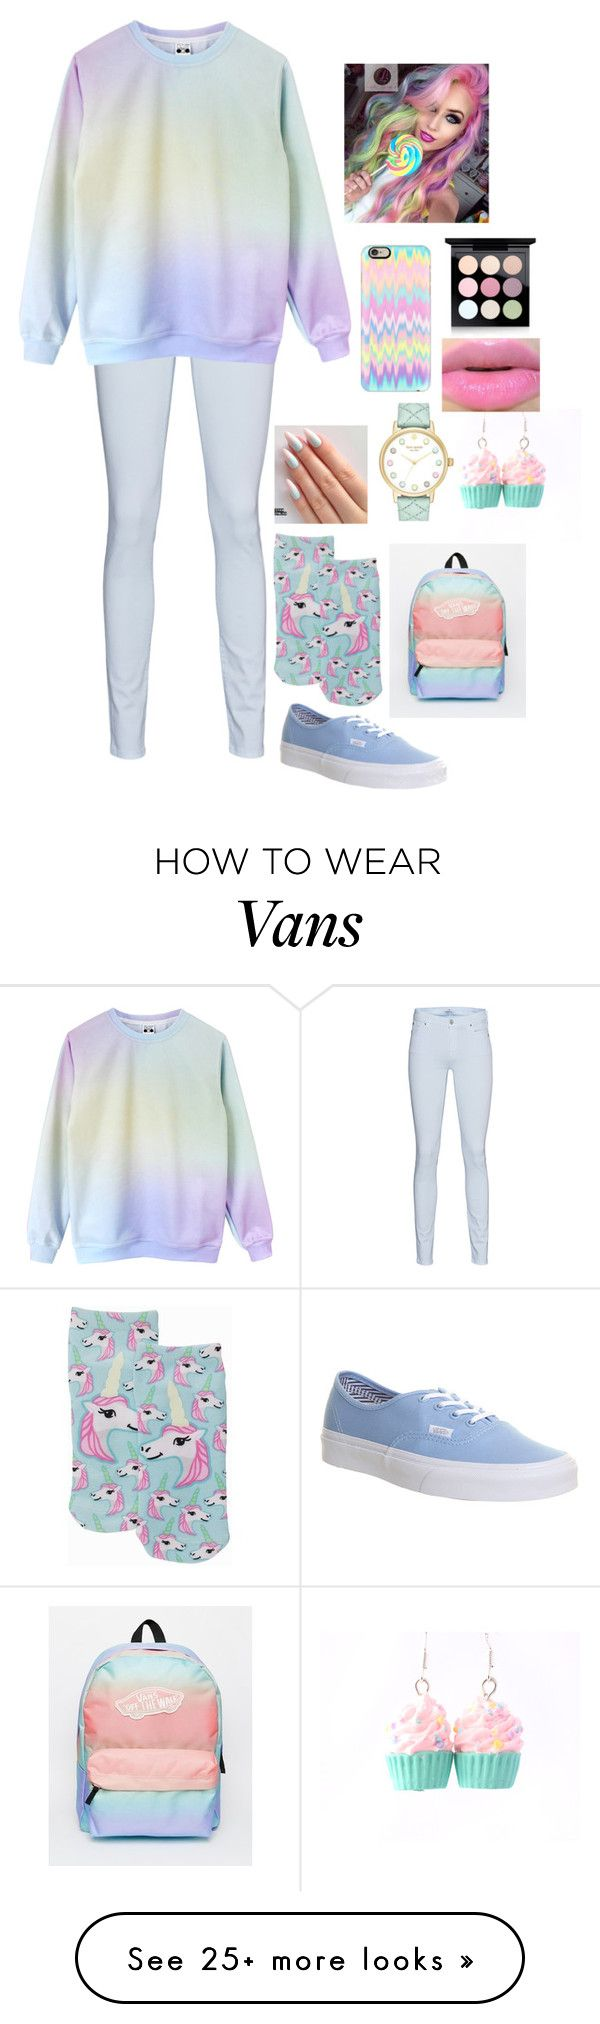 """Pastel"" by a-angel on Polyvore featuring 7 For All Mankind, Living Royal, Vans, Kate Spade, Casetify and MAC Cosmetics"